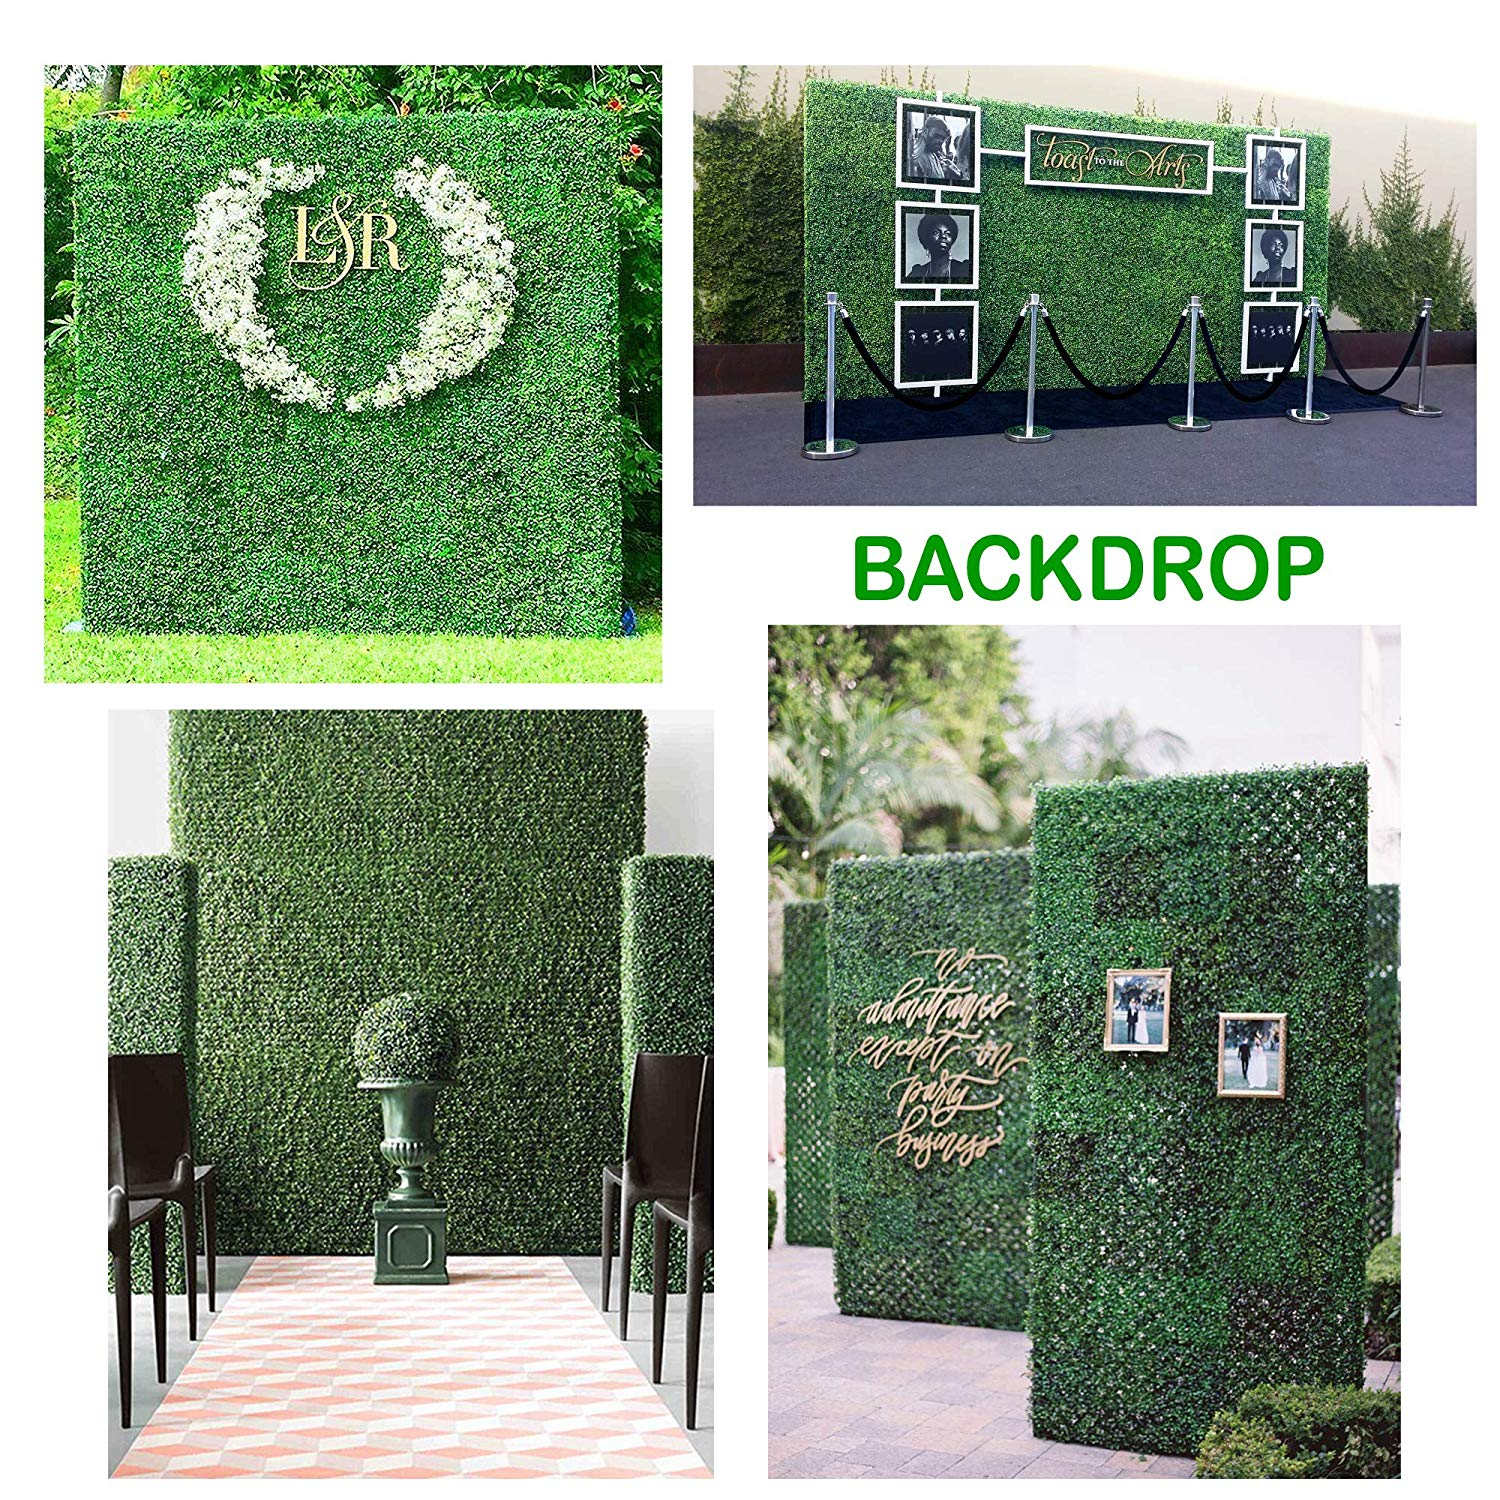 Gorgeoushome Artificial Hedge Plant Panels Privacy Screen Hedge Greenery Ivy Privacy Fence Screening For Both Outdoor Or Indoor Decoration 20 X 20 Milan 12pc Walmart Com Walmart Com